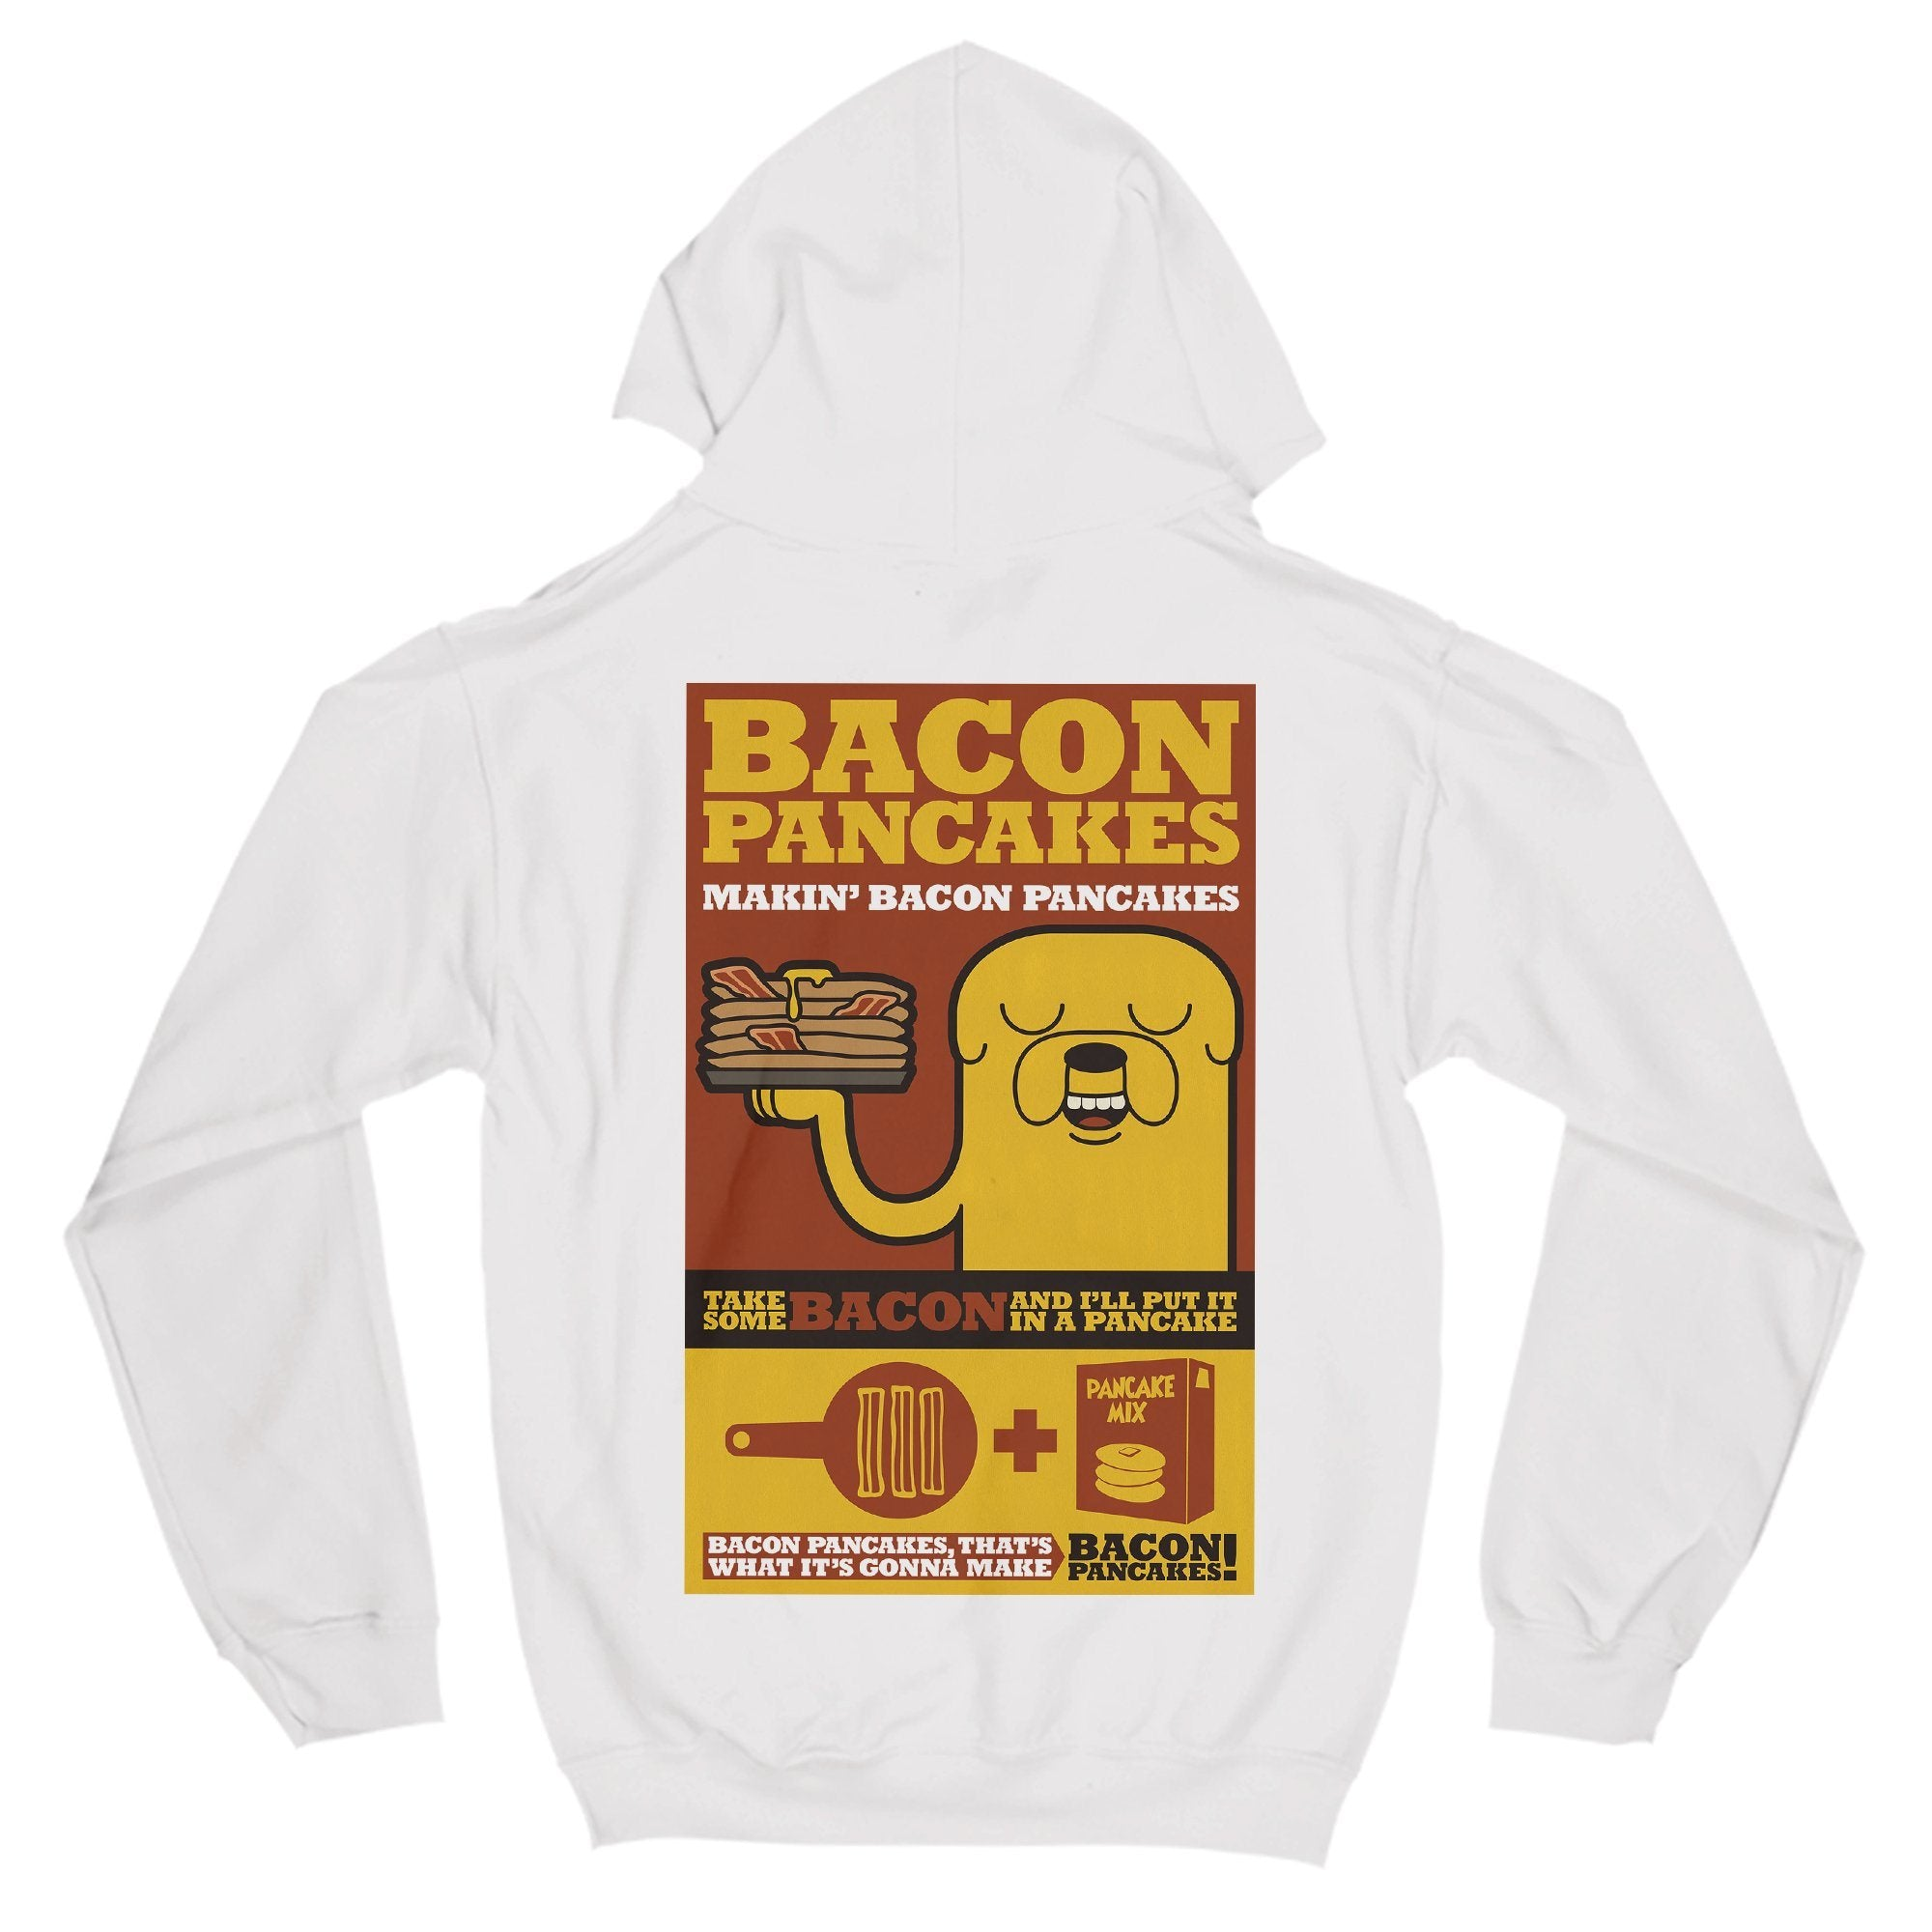 Bacon Pancakes Primate Novelty Unisex T-Shirt Adults: S